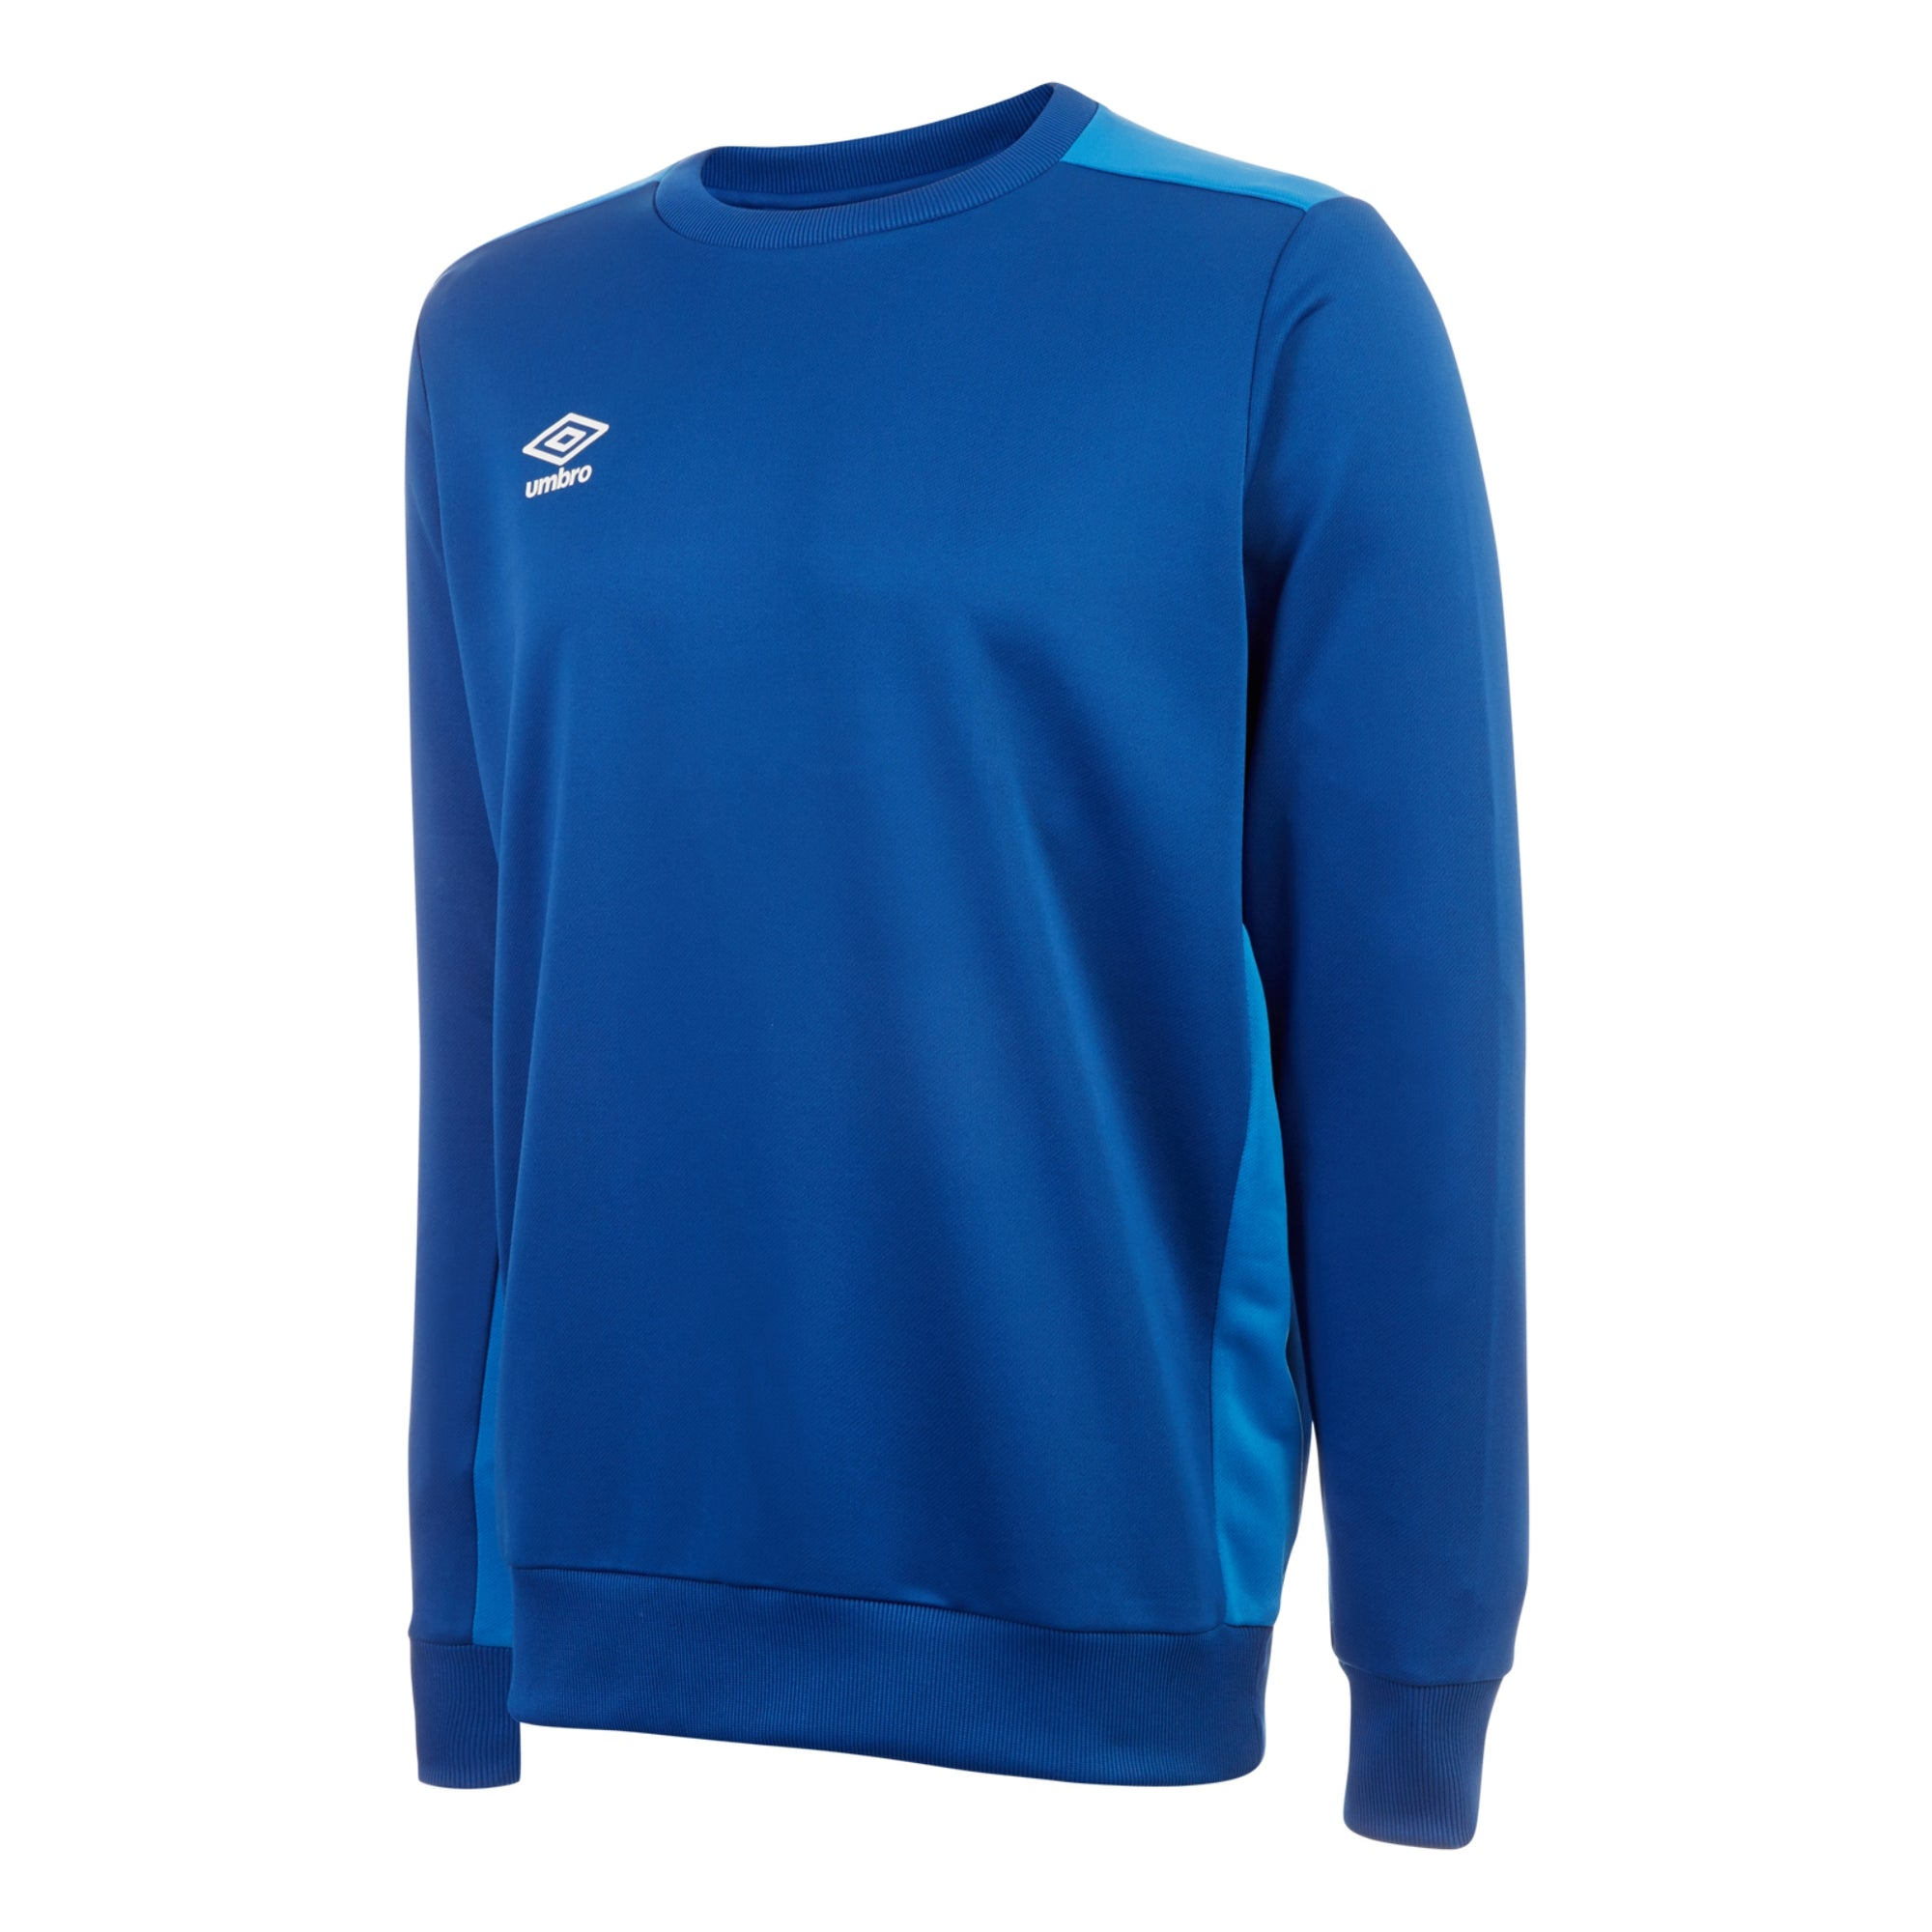 Umbro training poly sweat in TW royal with contrast lighter french blue shoulder and side panels